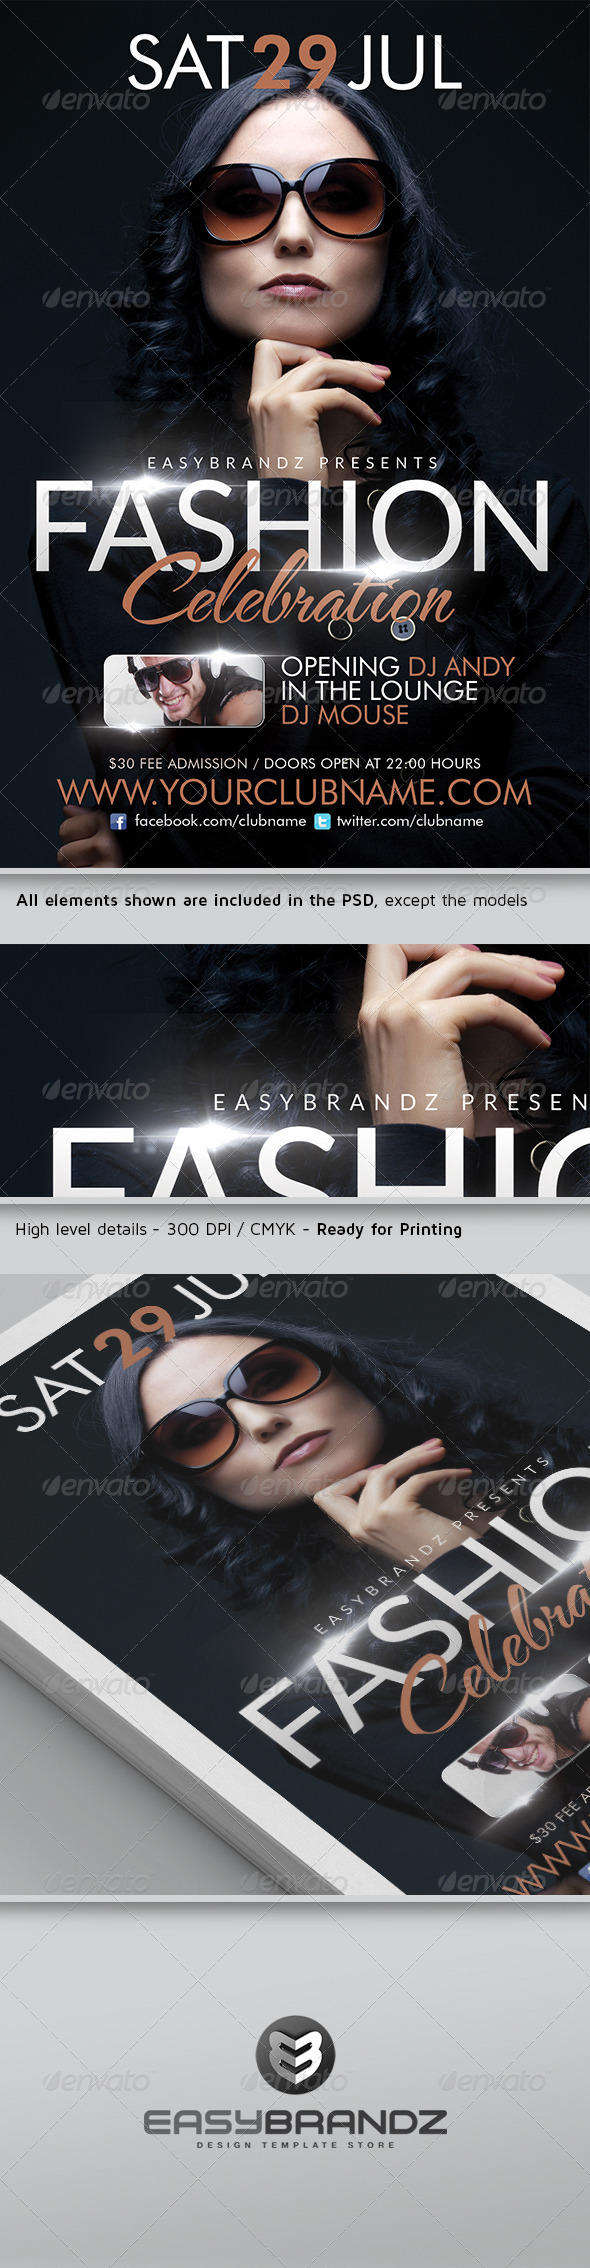 GraphicRiver Fashion Celebration Flyer Template 4639912